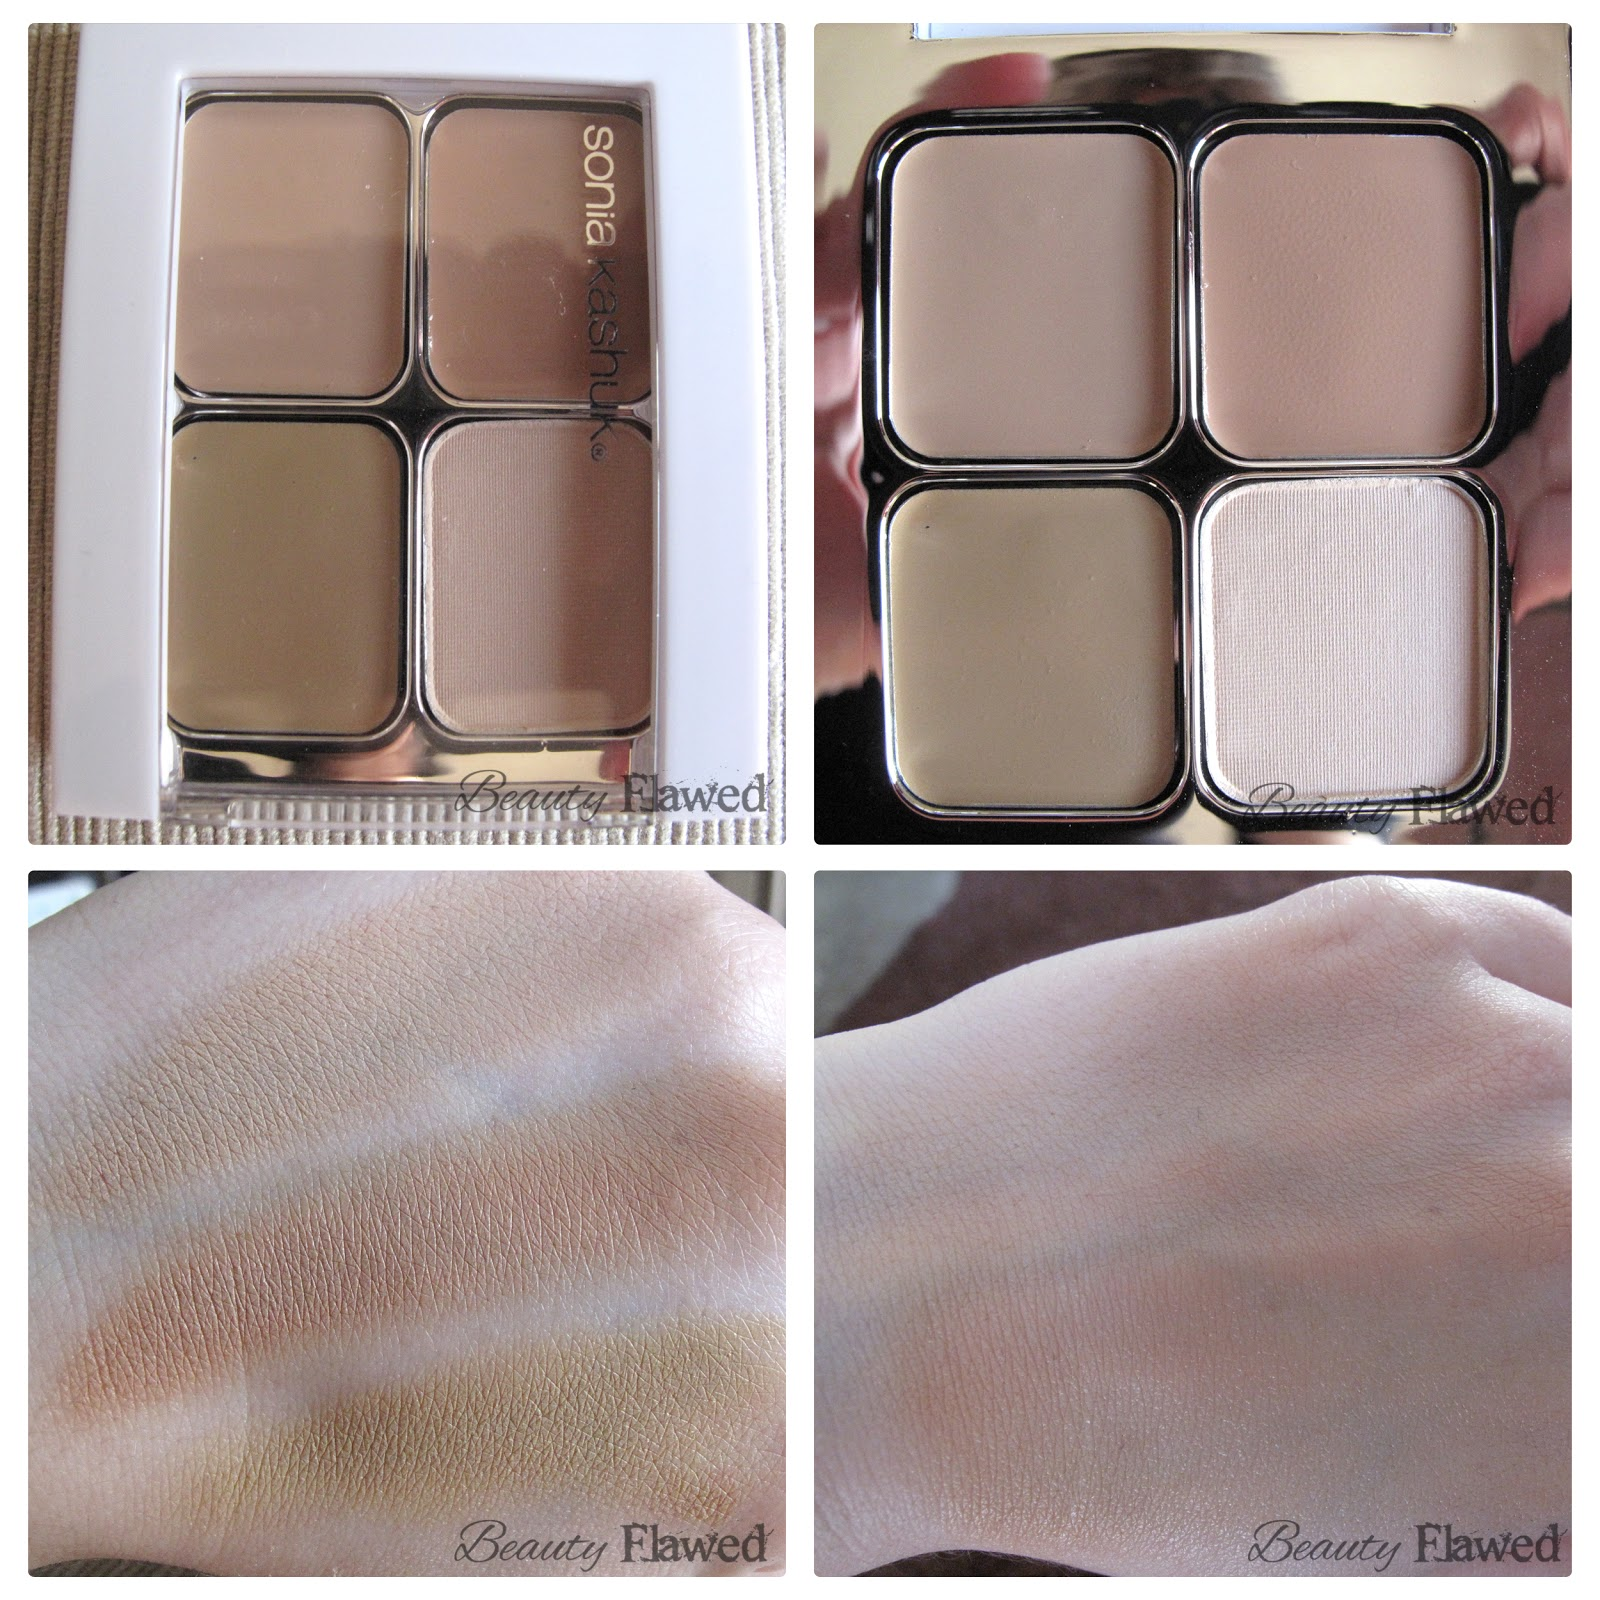 sonia kashuk concealer palette how to use